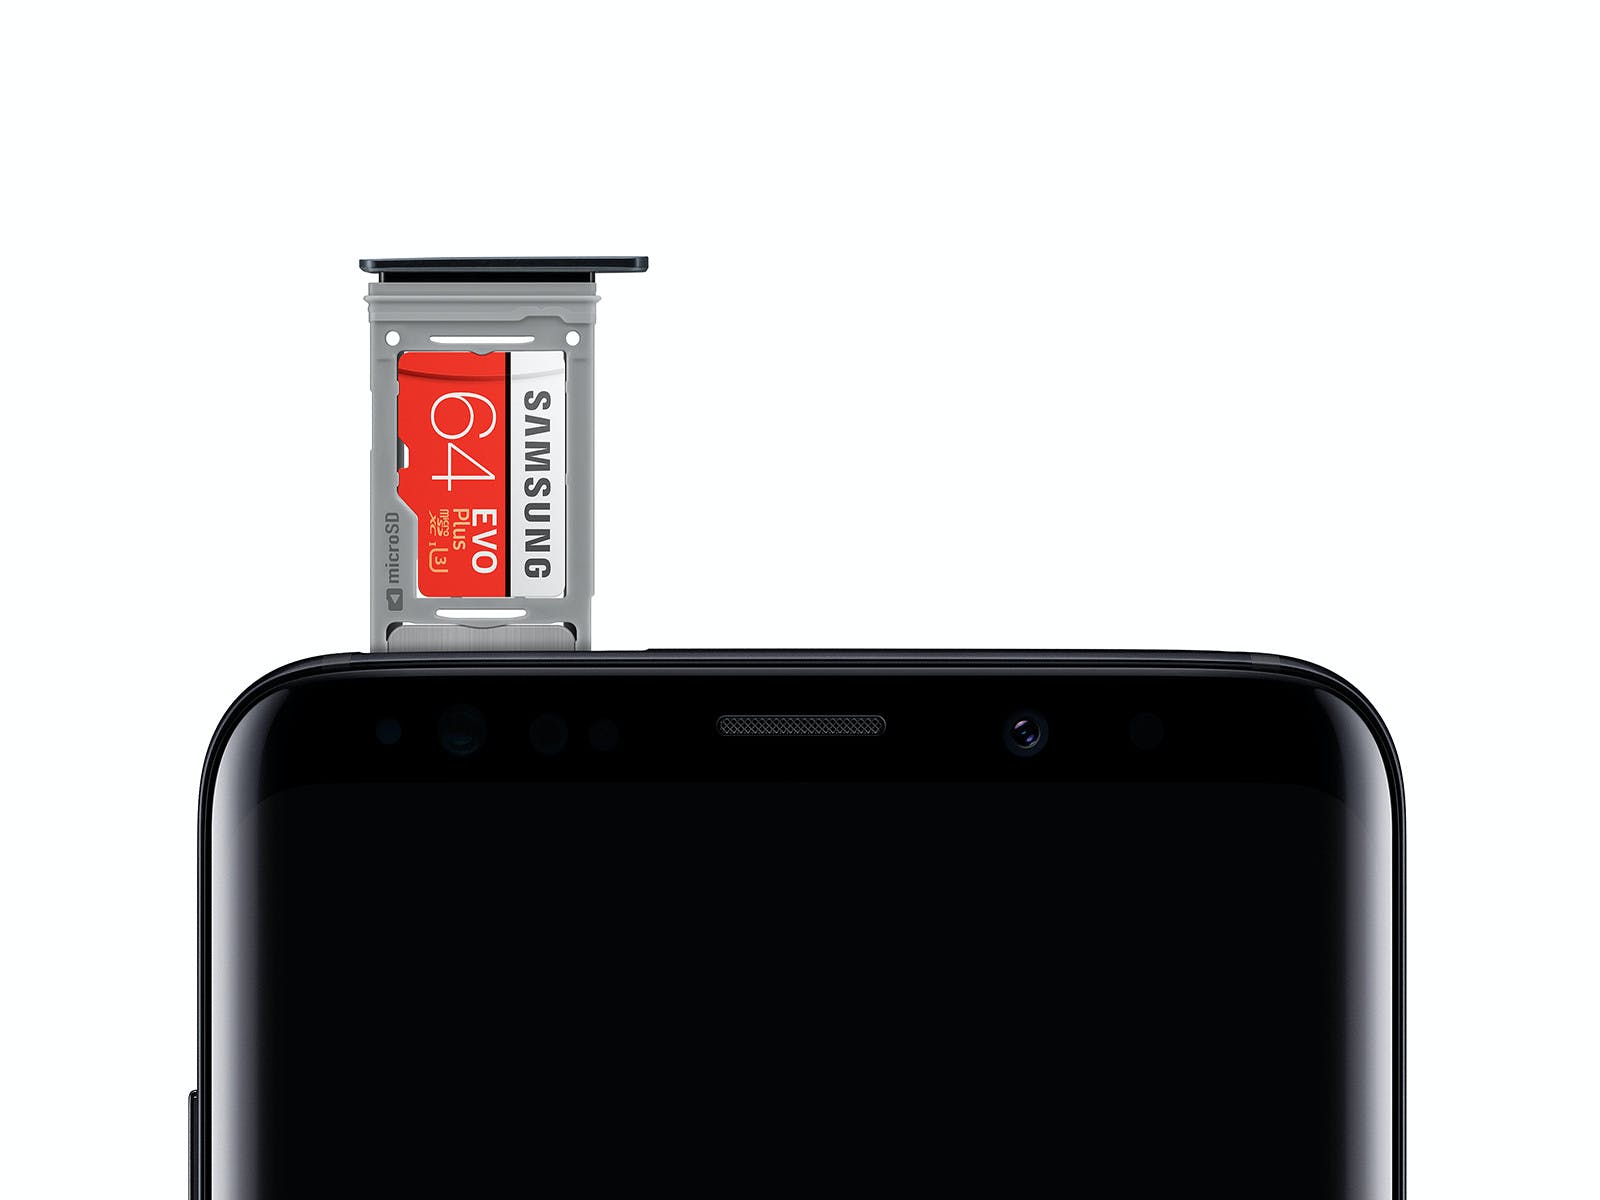 Samsung Microsdhc Evo Plus Memory Card With Adapter 64gb